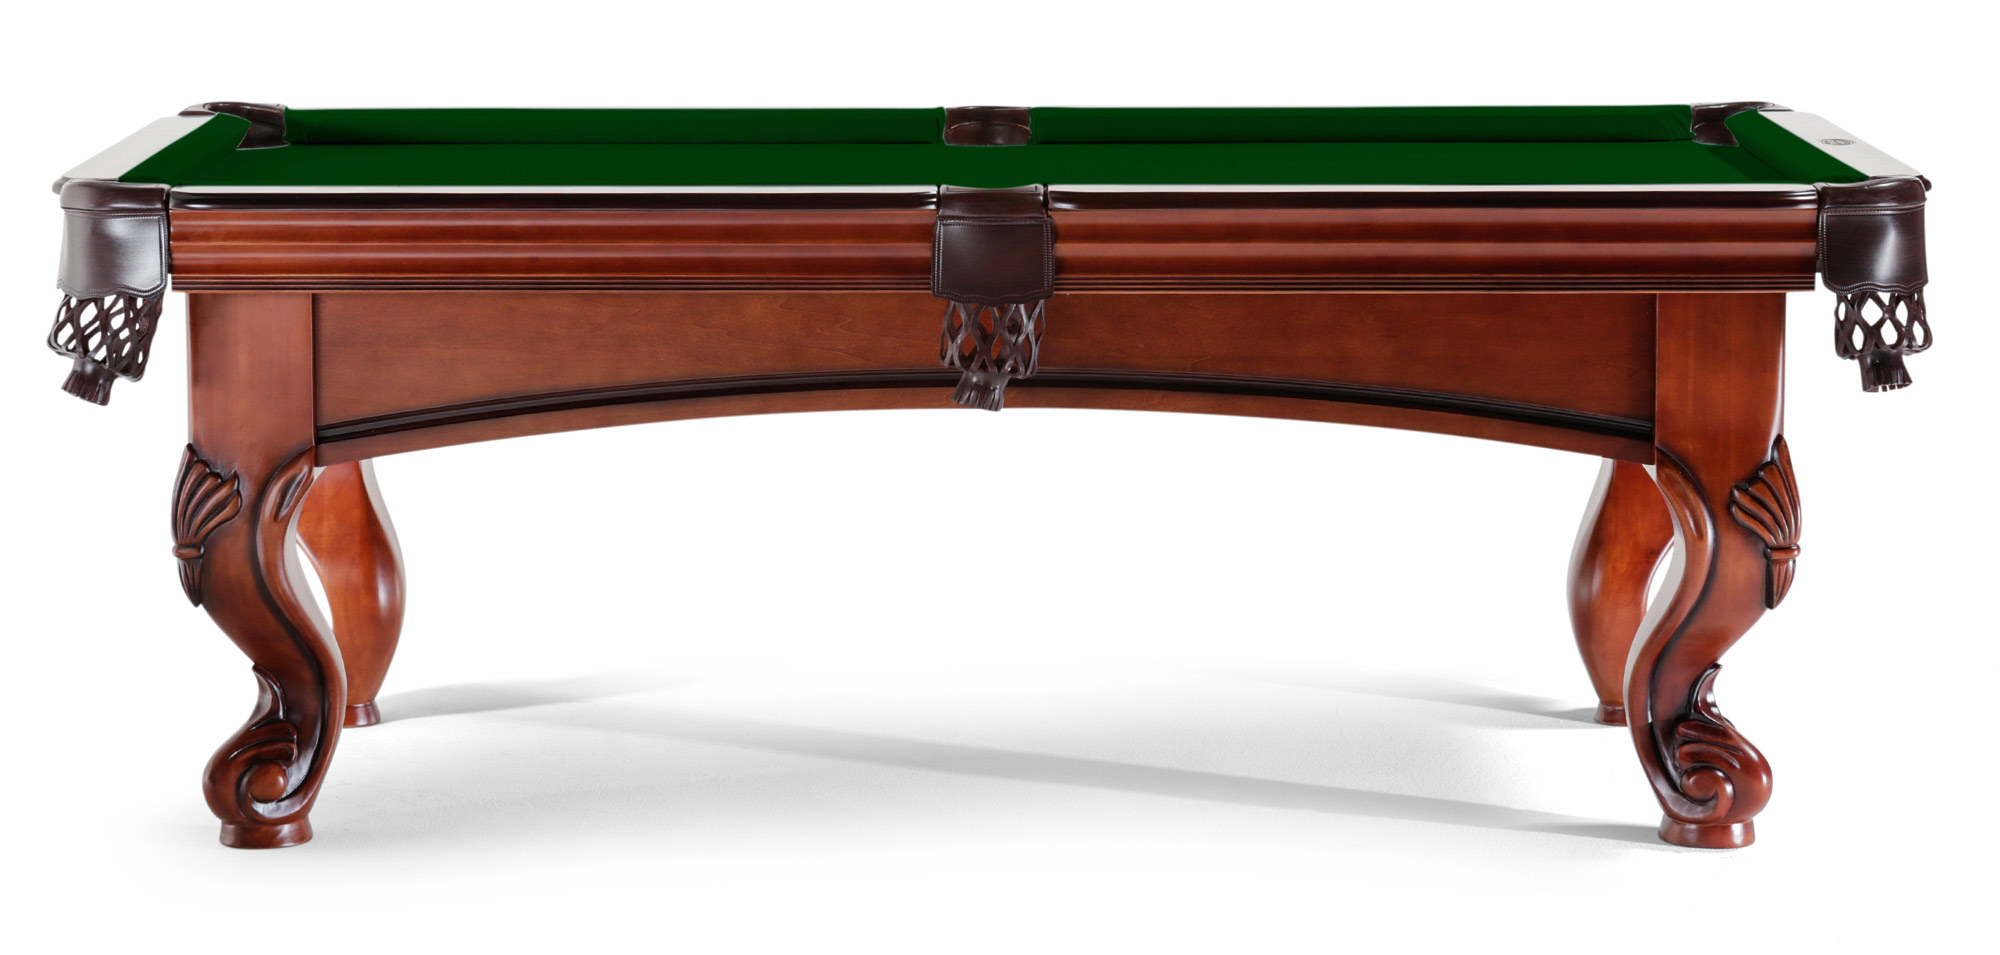 Warranty Spencer Marston - How to level a pool table